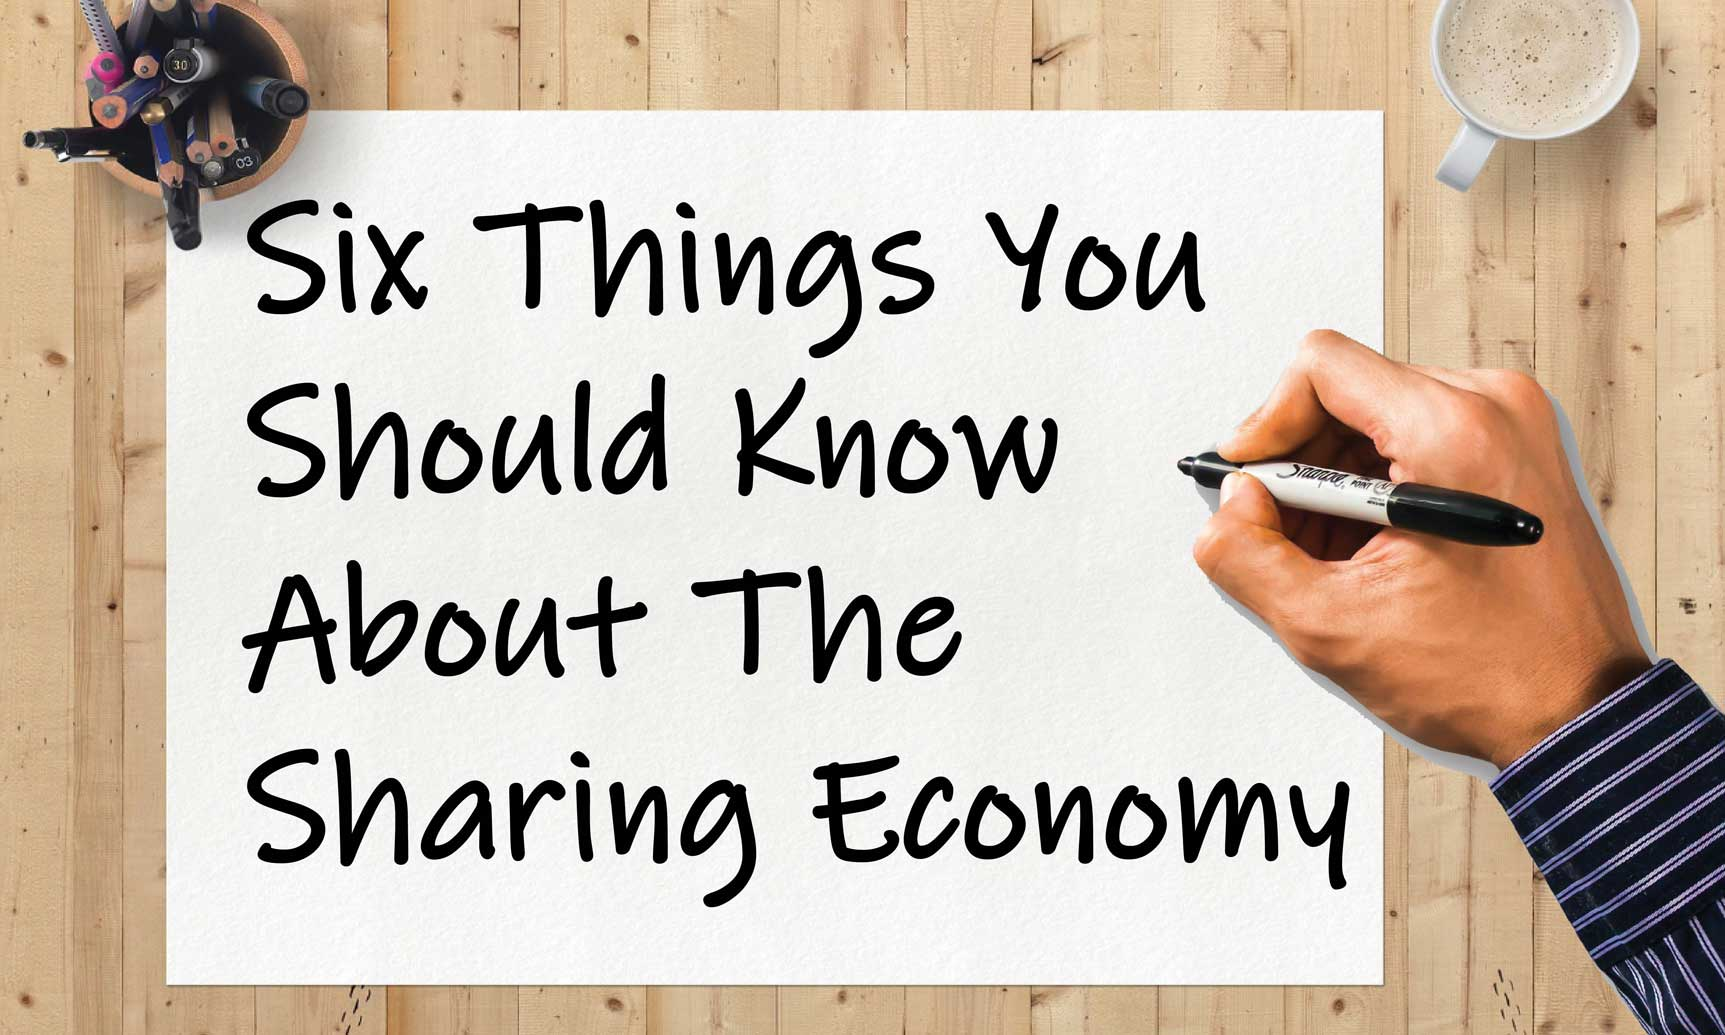 Sharing Economy & What You Need To Know